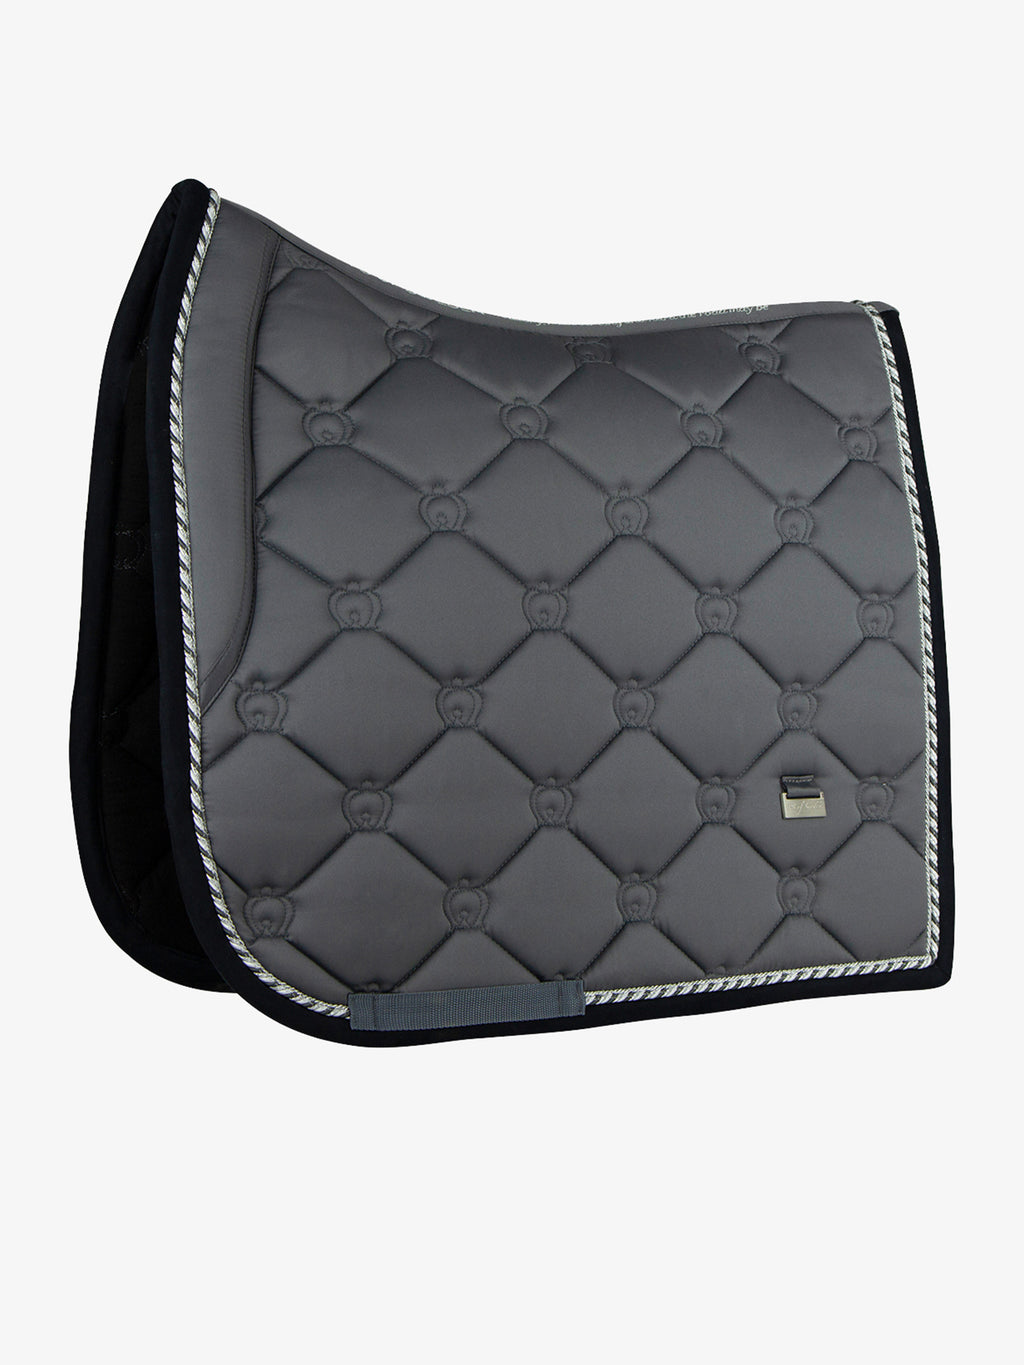 Ps of Sweden Dressage Saddle Pad - Anthracite - The Dressage Store